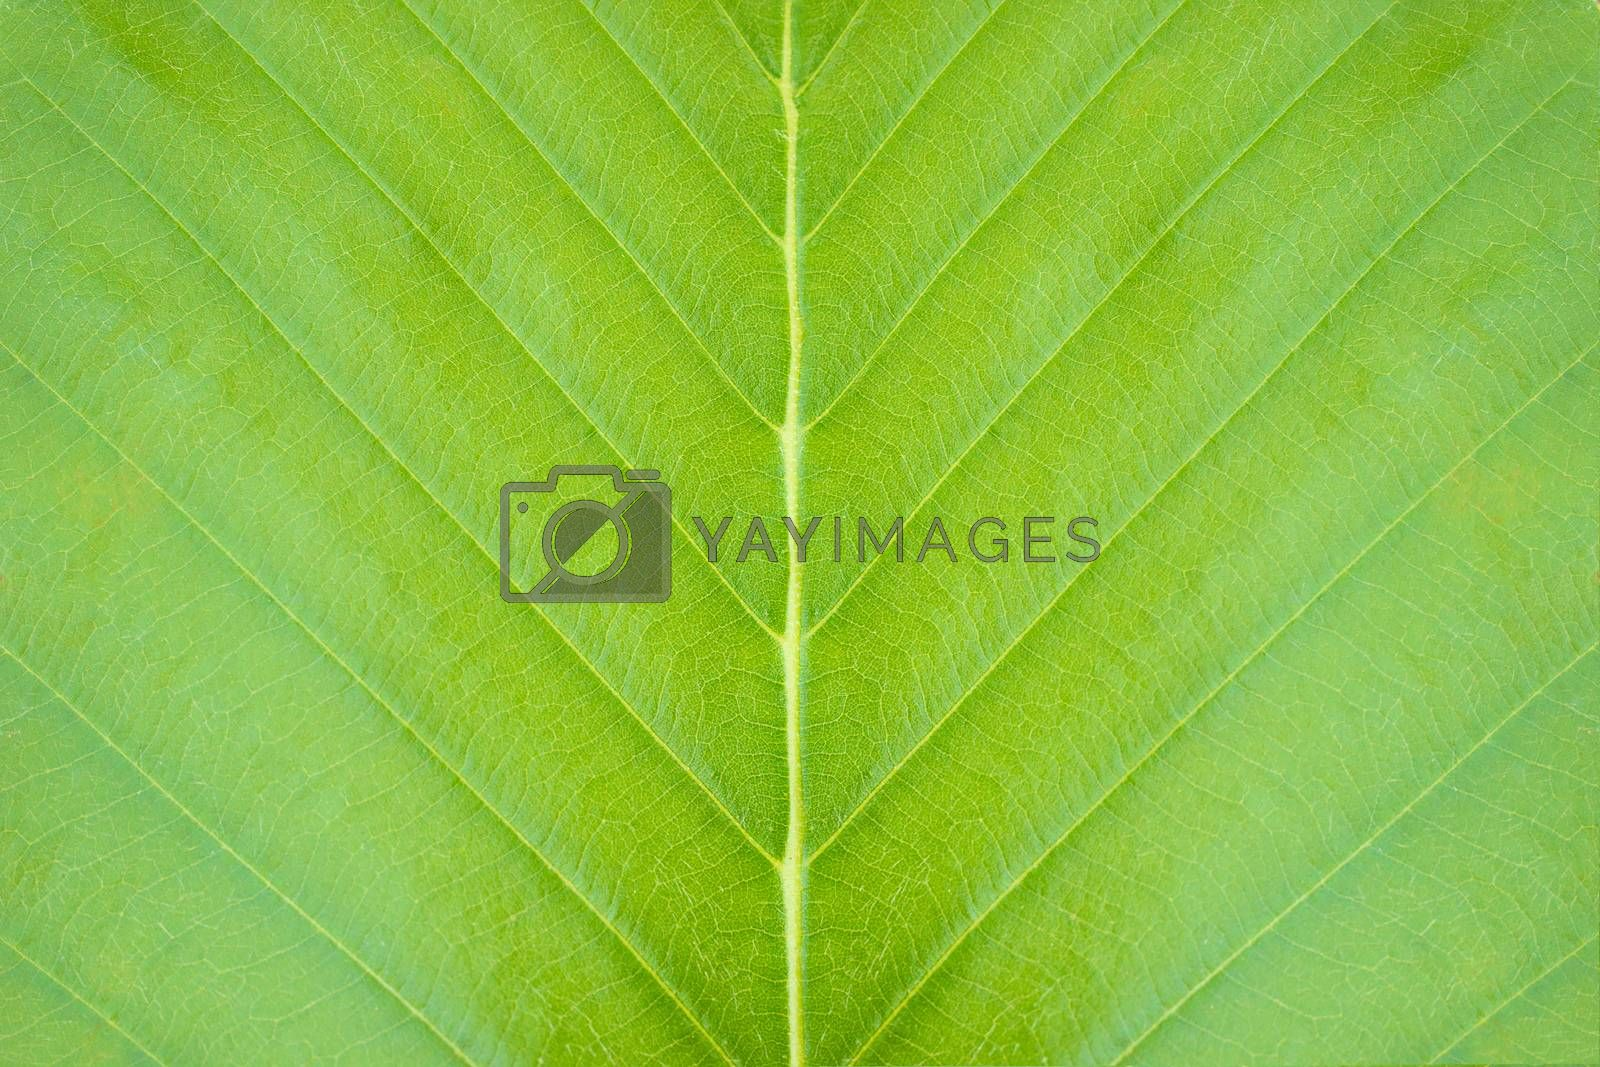 Closeup green leaf texture background in tropical forest. Concept of nature conservation and global warming.